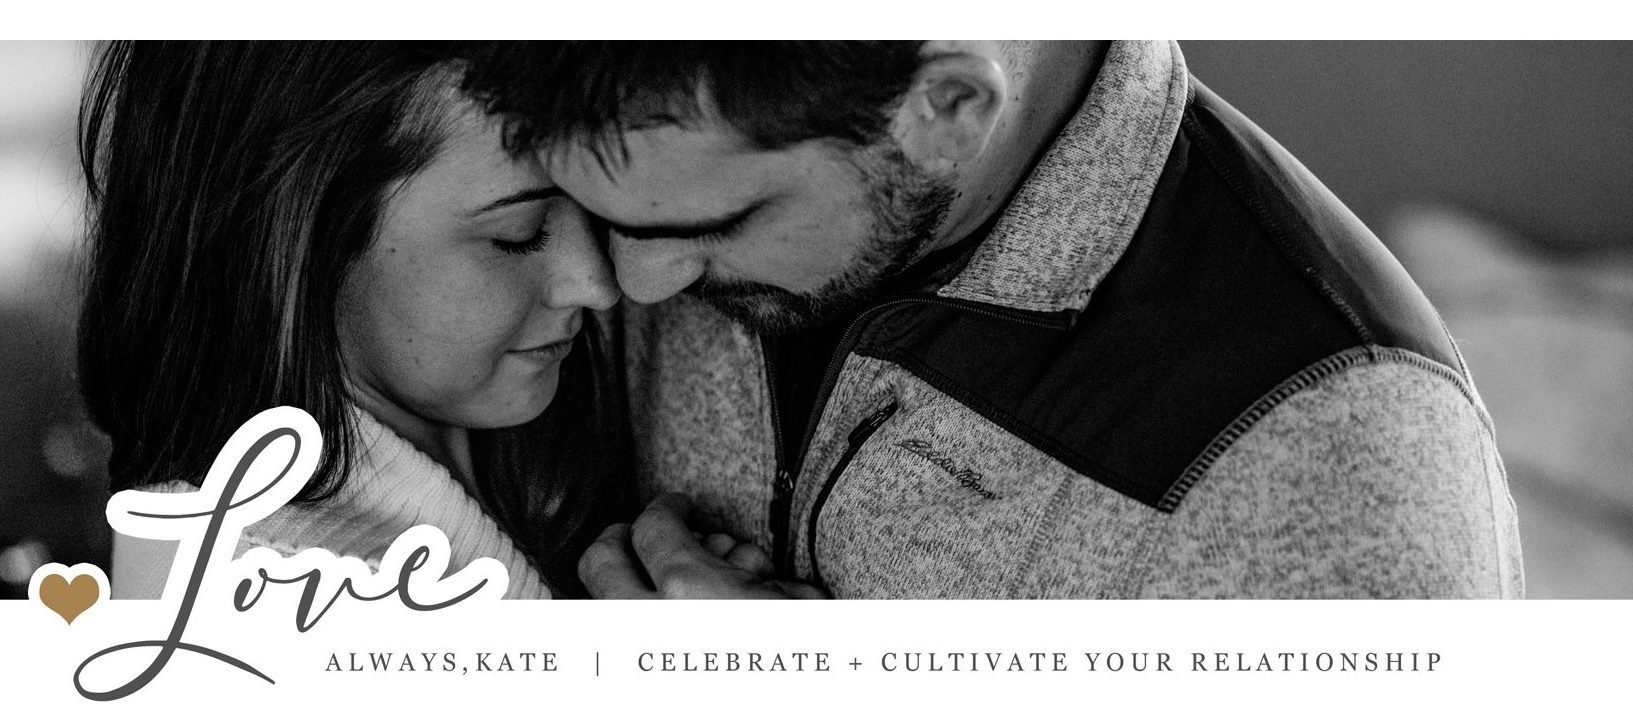 Love Always, Kate is committed to celebrating, cultivating, and spreading love.  Love is messy, it's beautiful, and it's the greatest gift we can give and receive. Finding true love is an awe-inspiring phenomenon. Knowing that your love story is meant to be unique and imperfectly perfect can be such a relief and inspiration. This online community is built around all things love: love for yourself, love for your partner, love for your passions, love for others. I want to create a safe space where you feel comfortable to ask for advice, celebrate wins and simply conversate with others who share your passion for love.